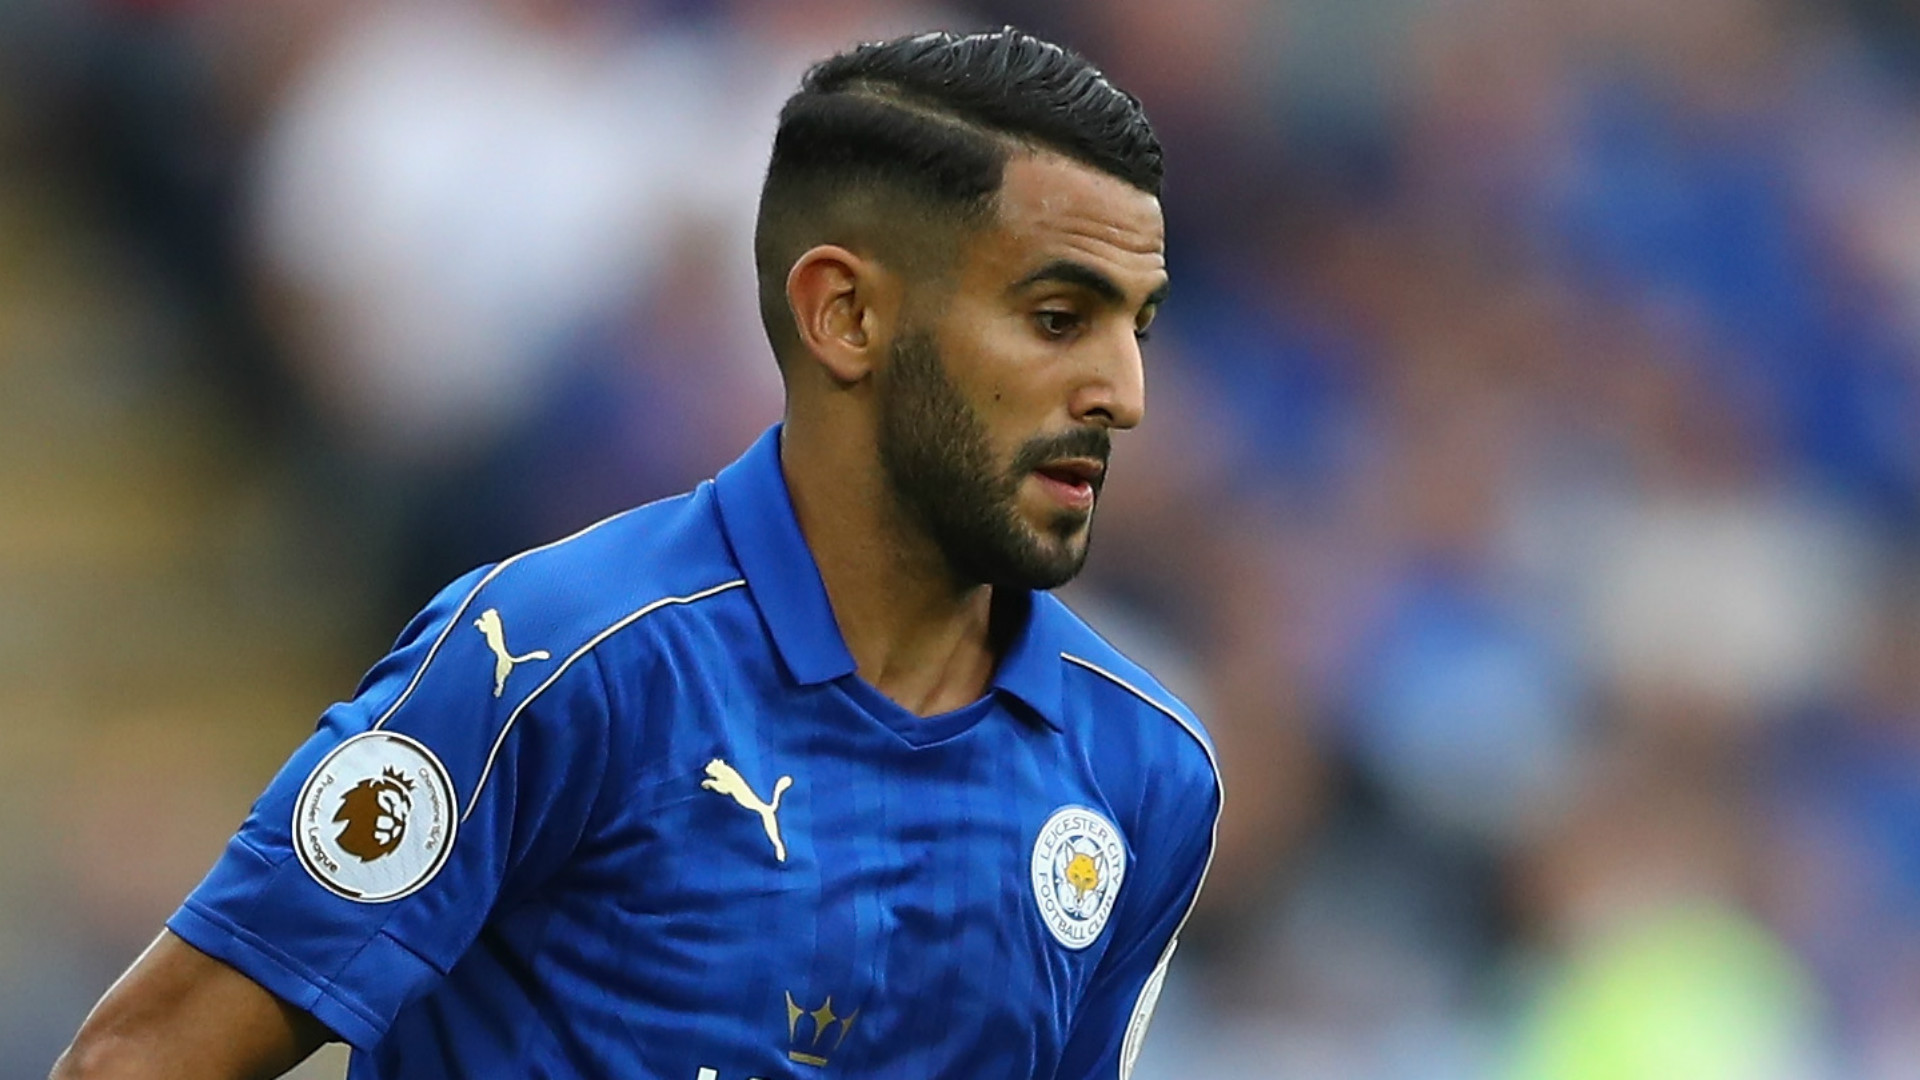 Roma ready to move on from Mahrez, confirms Monchi